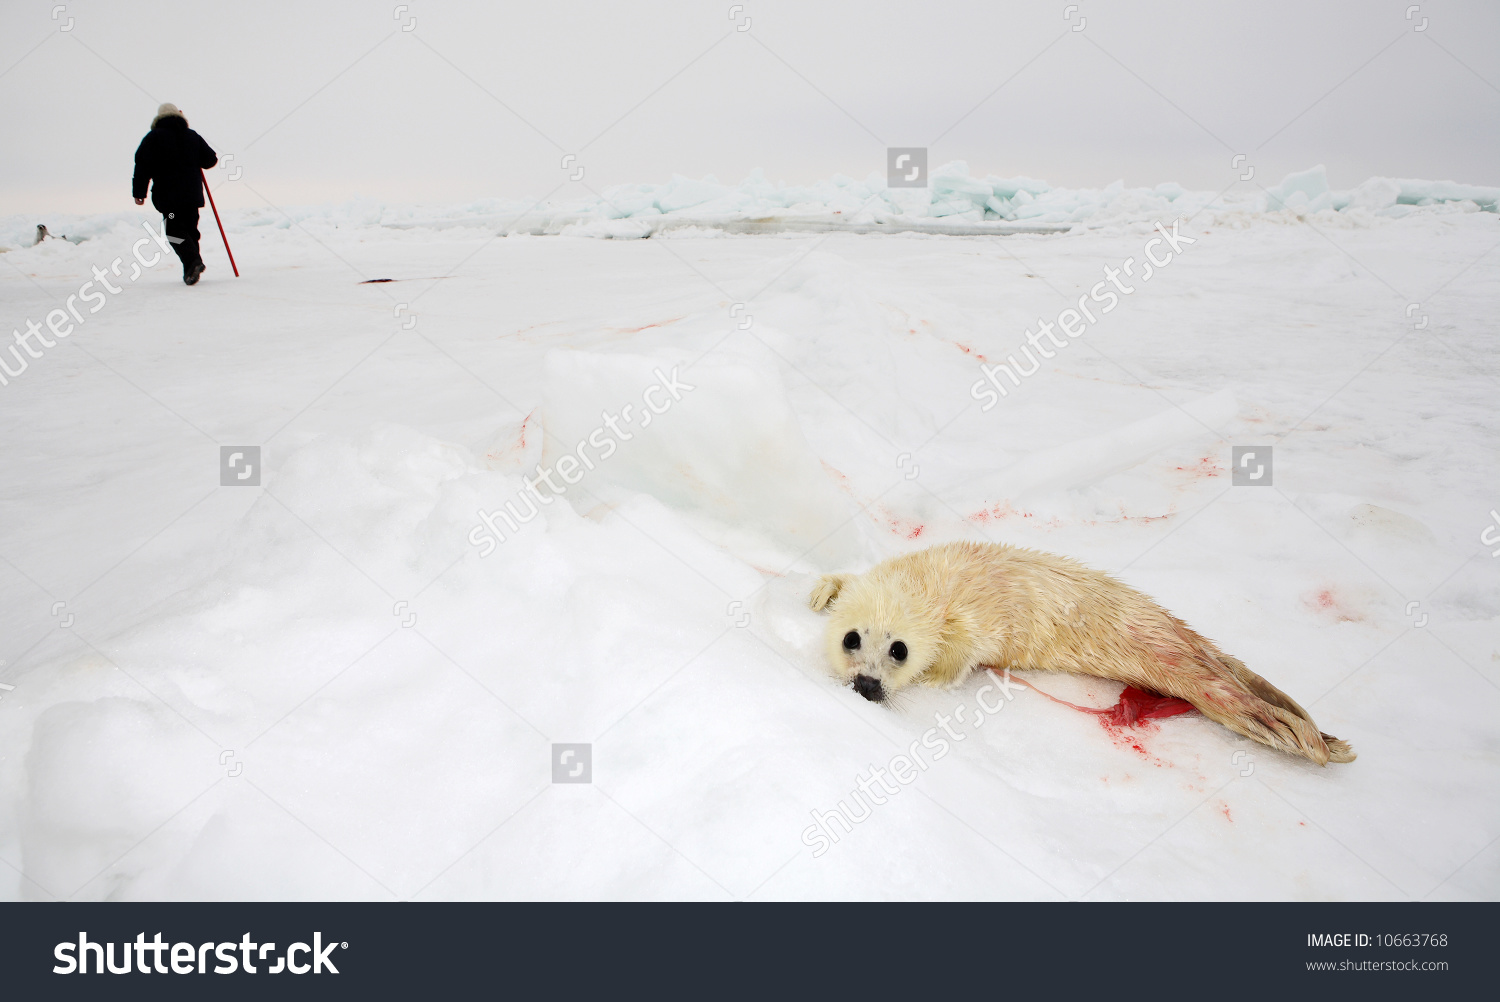 Harp Seal clipart Clipart Seal Download Download #1